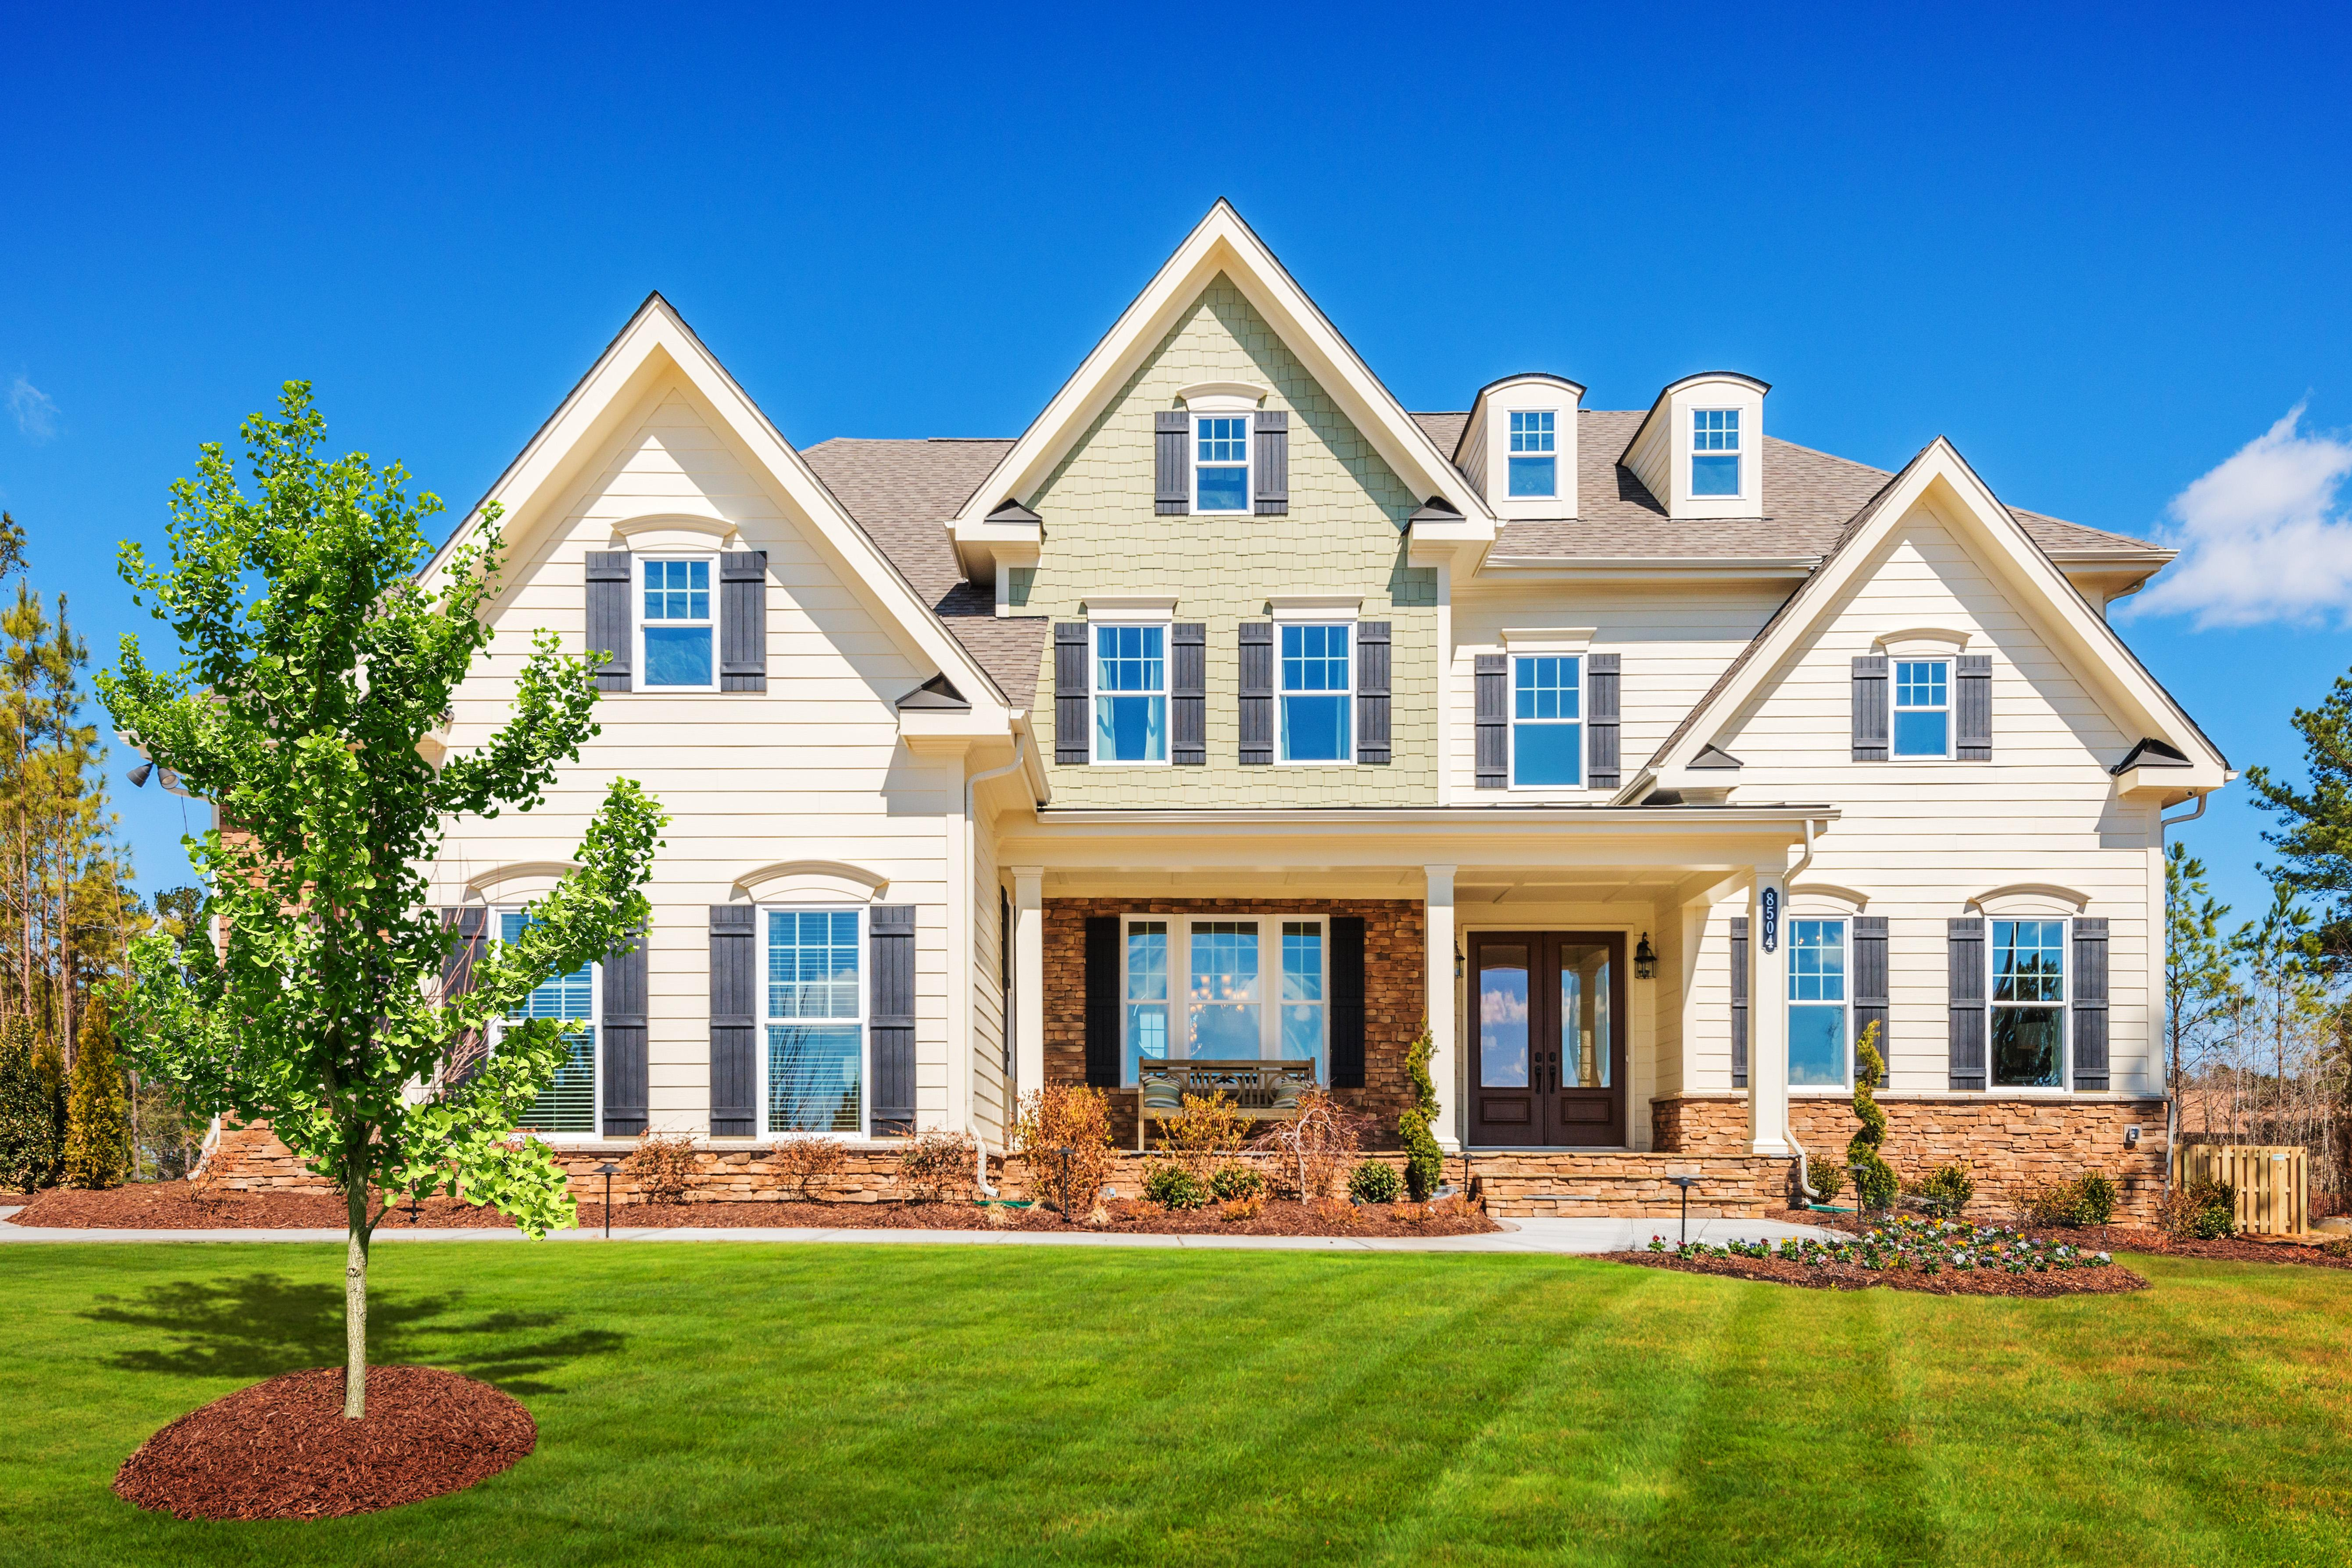 New Clifton Park II Home Model For Sale | NVHomes